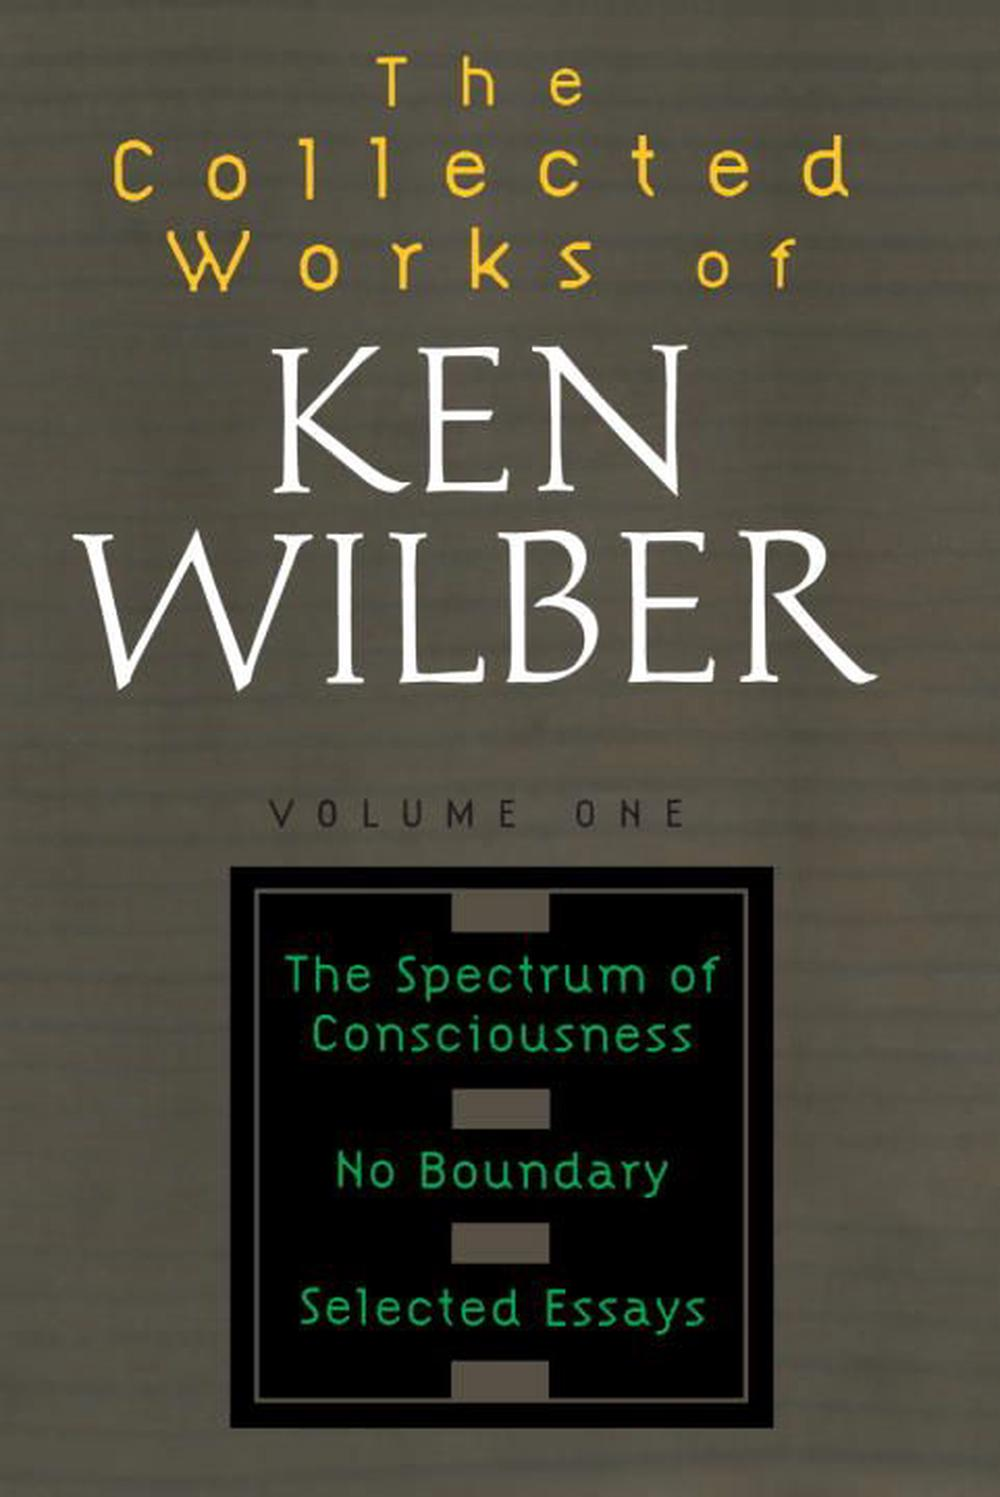 Collected Works of Ken Wilber, Volume 1